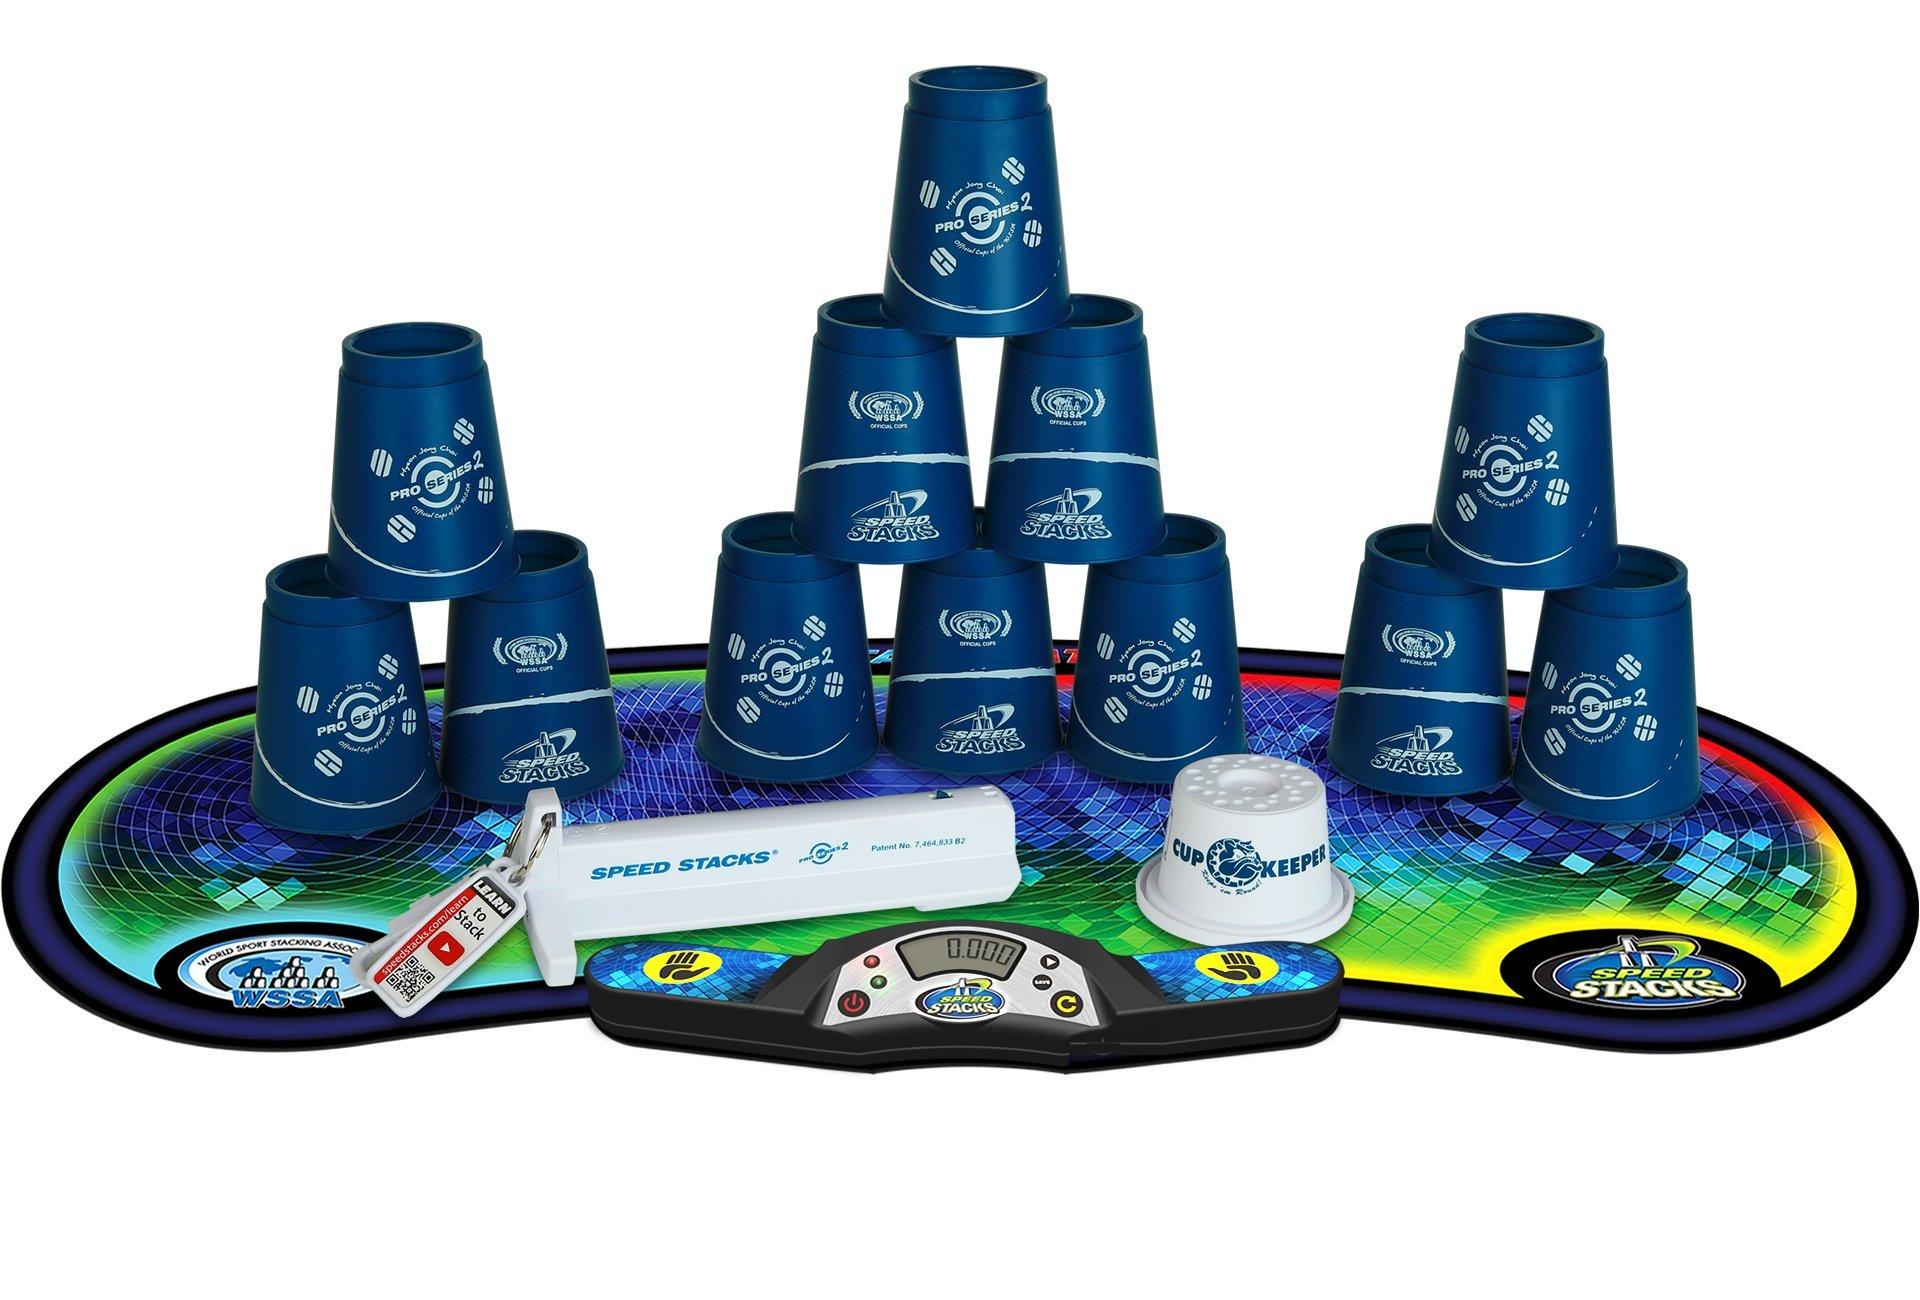 SPEED STACKS Competitor - Pro Series 2 Choi w/ Voxel Glow Mat